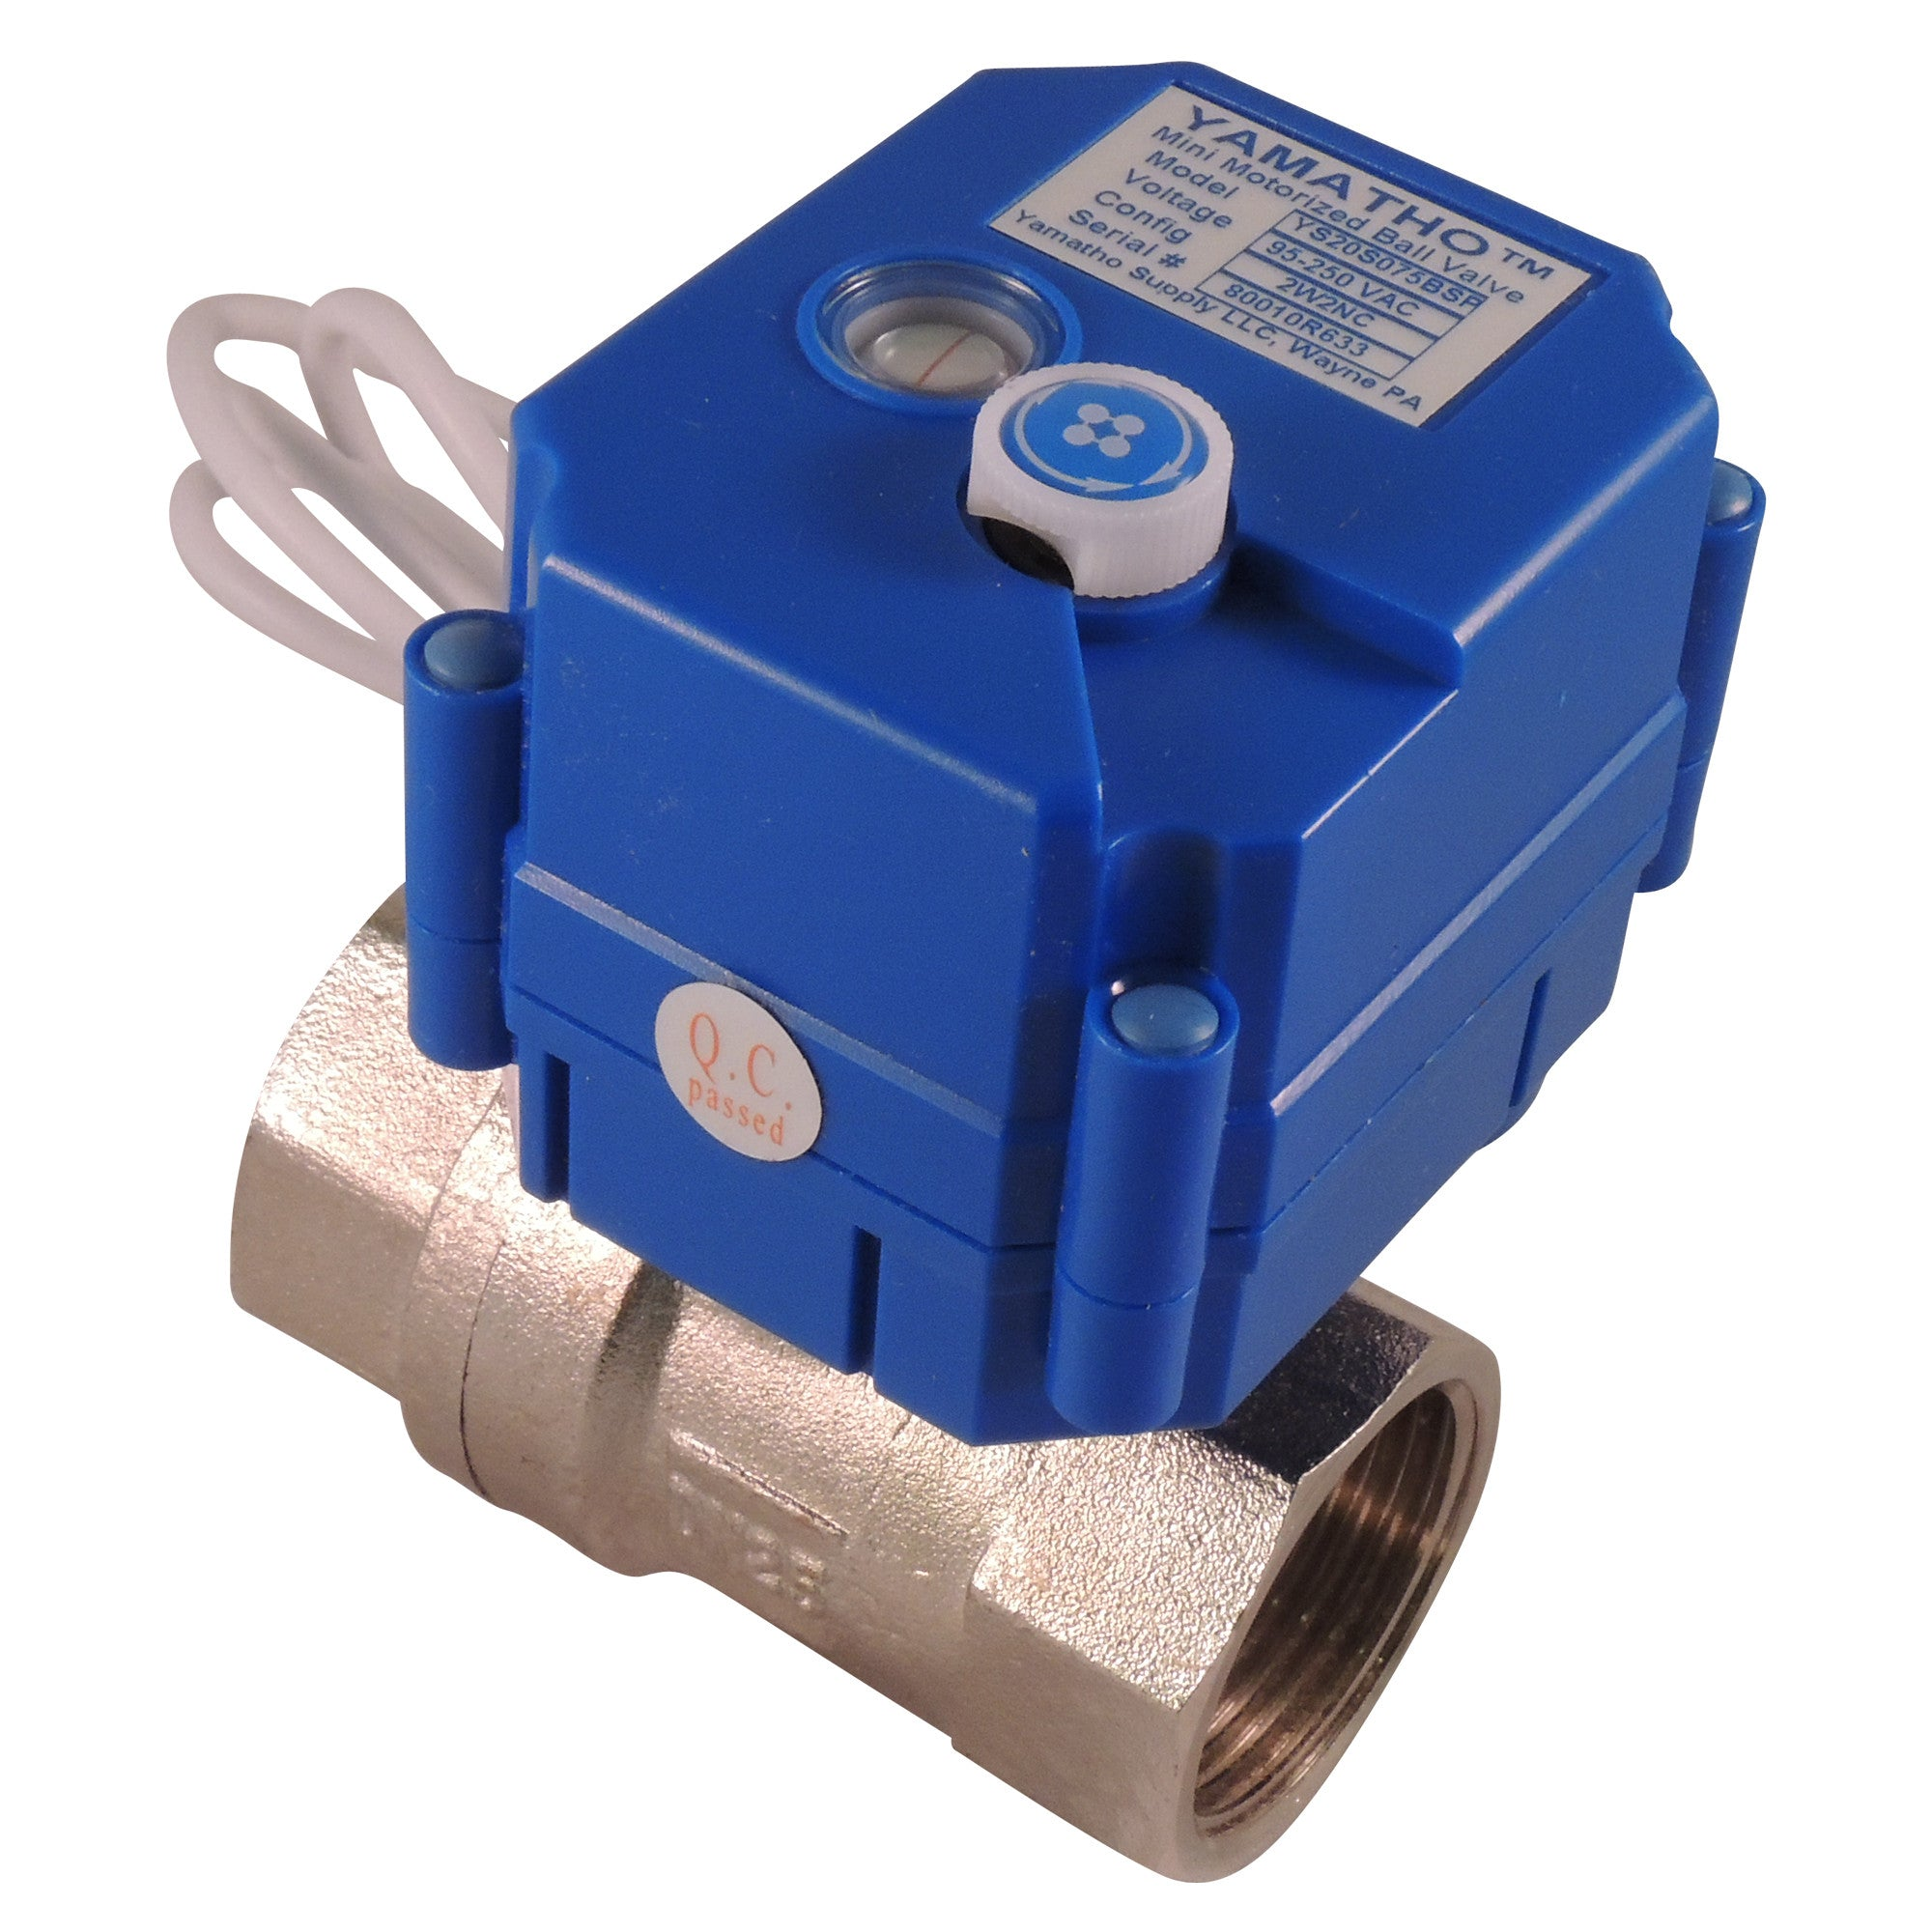 High Pressure Chemical Injection Quill Single And Duplex Yama Wiring Diagram Electric Ball Valve Ys20skt2s 2 Wires W Position Elec Ind Normally Closed 24 Vdc Yamavalve